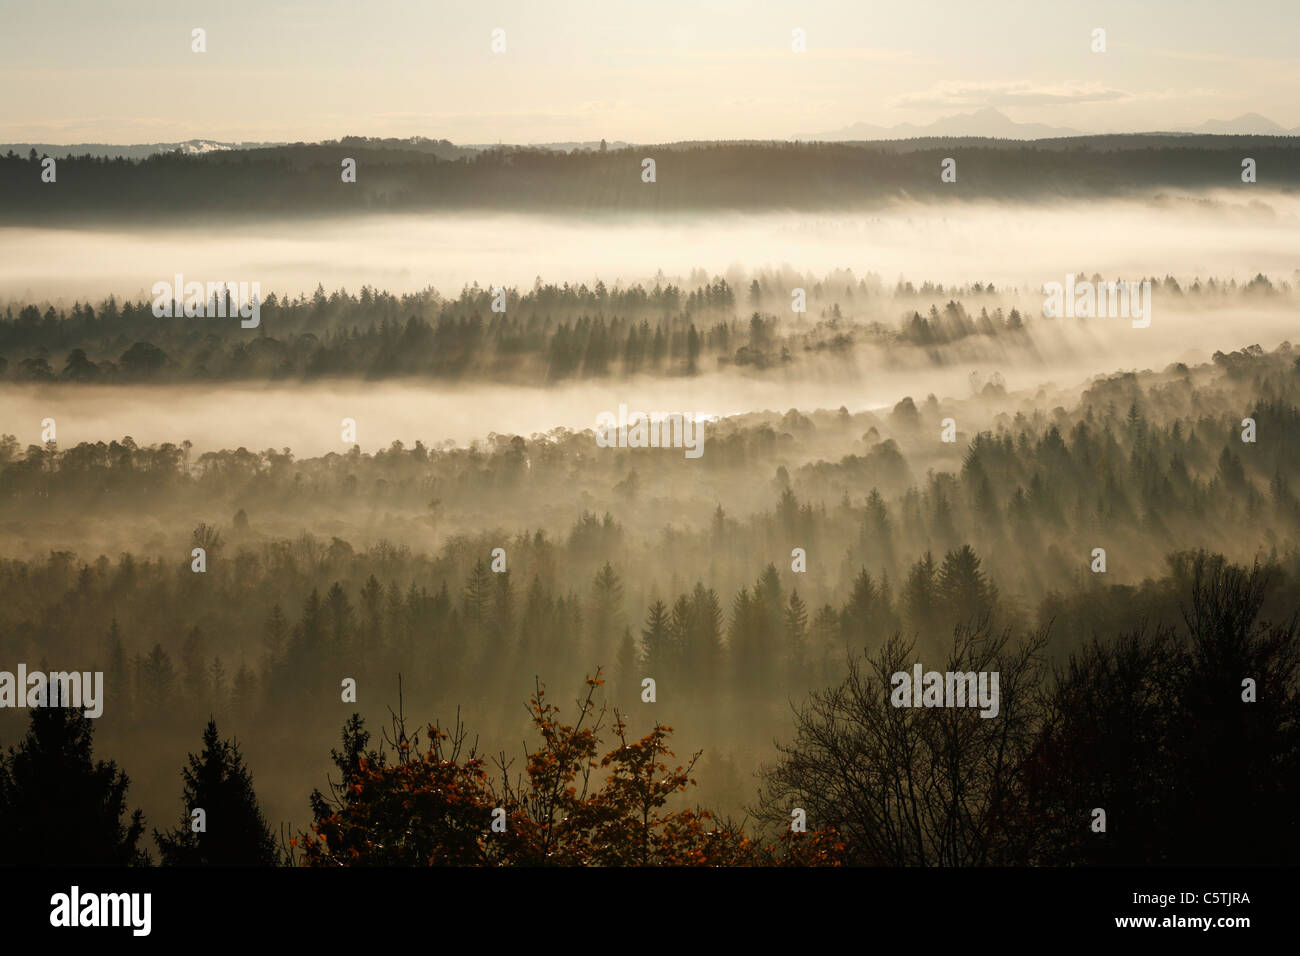 Germany, Bavaria, Upper Bavaria, View of pupplinger au near wolfratshausen in morning - Stock Image